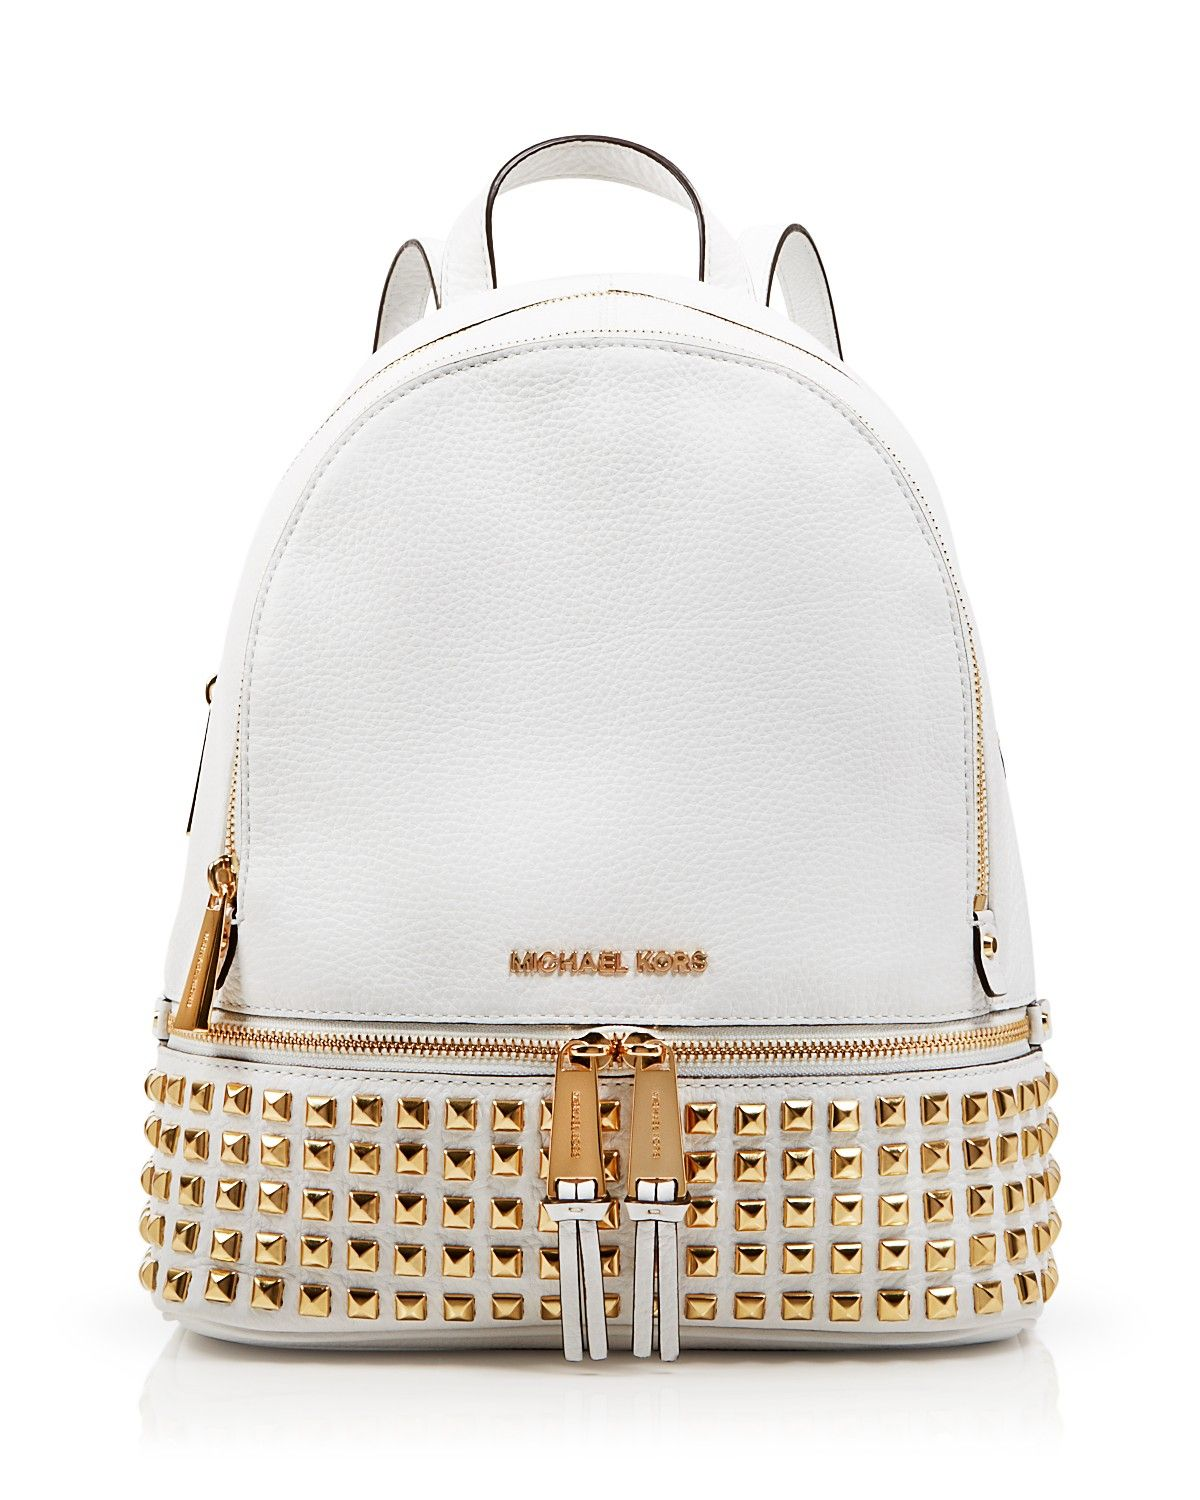 fd12c0dd4aaf50 Michael Kors' Small Rhea Studded Backpack is perfect for storing your  railway tickets! #100percentbloomies @bloomingdales